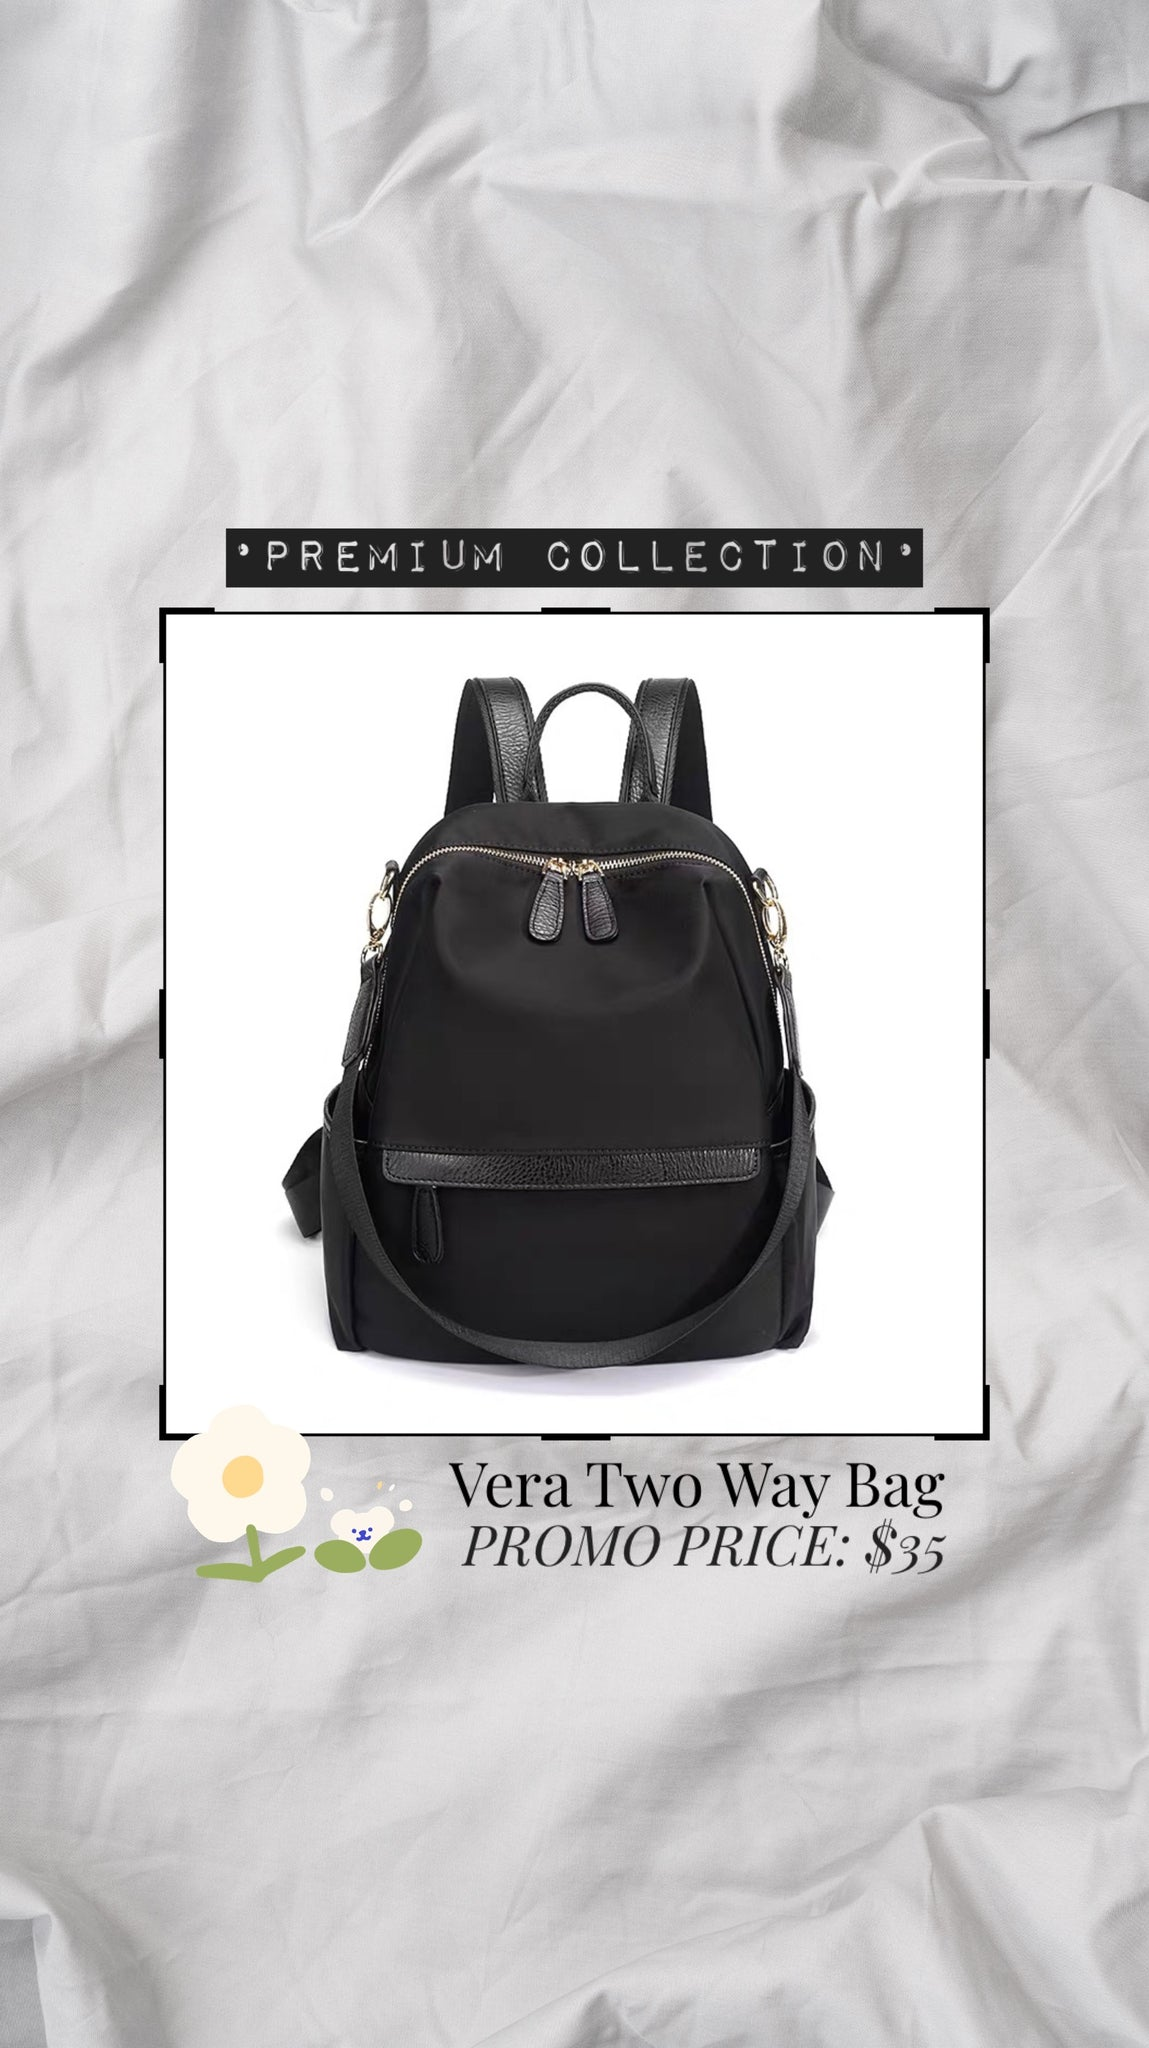 *Premium* Vera Two Way Bag